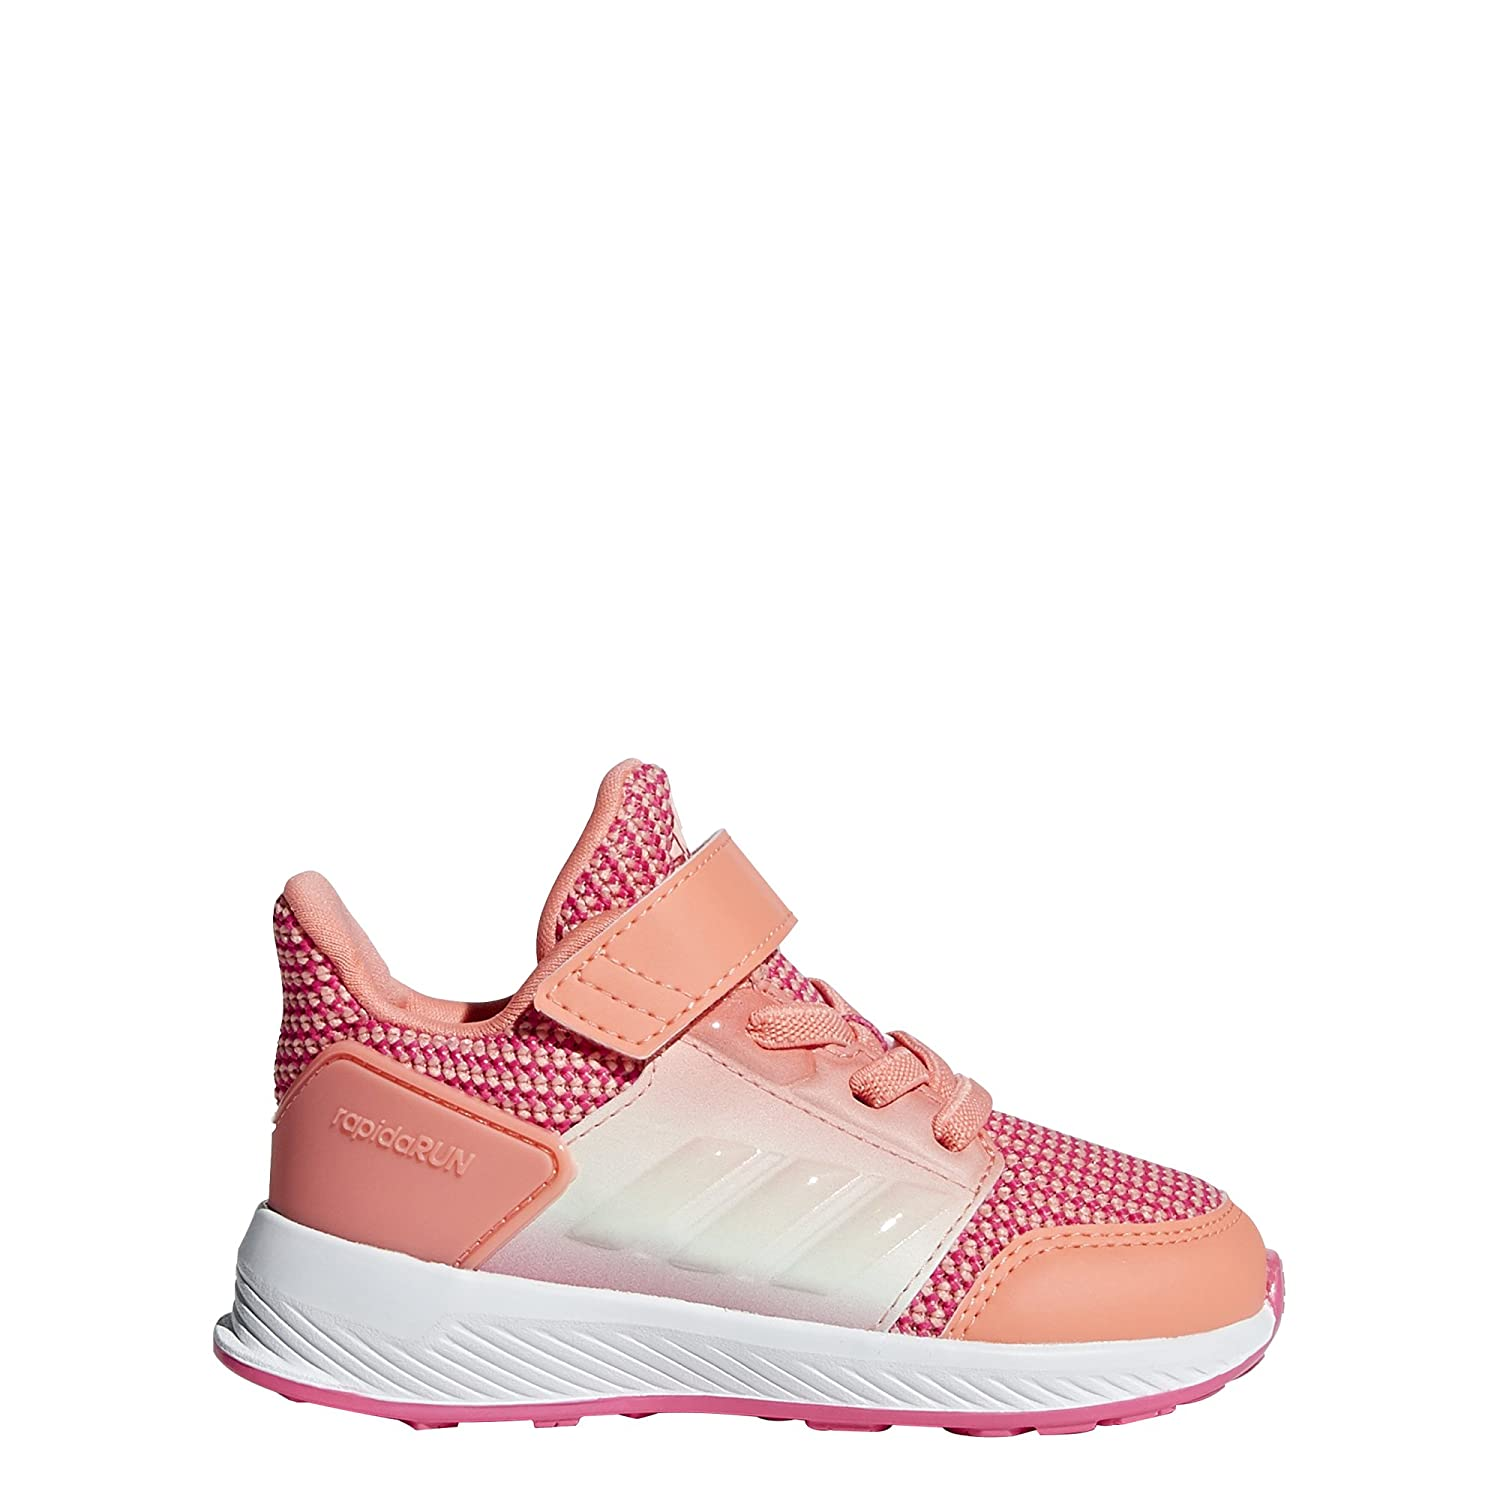 adidas Kids RapidaRun Running Shoe BY9027